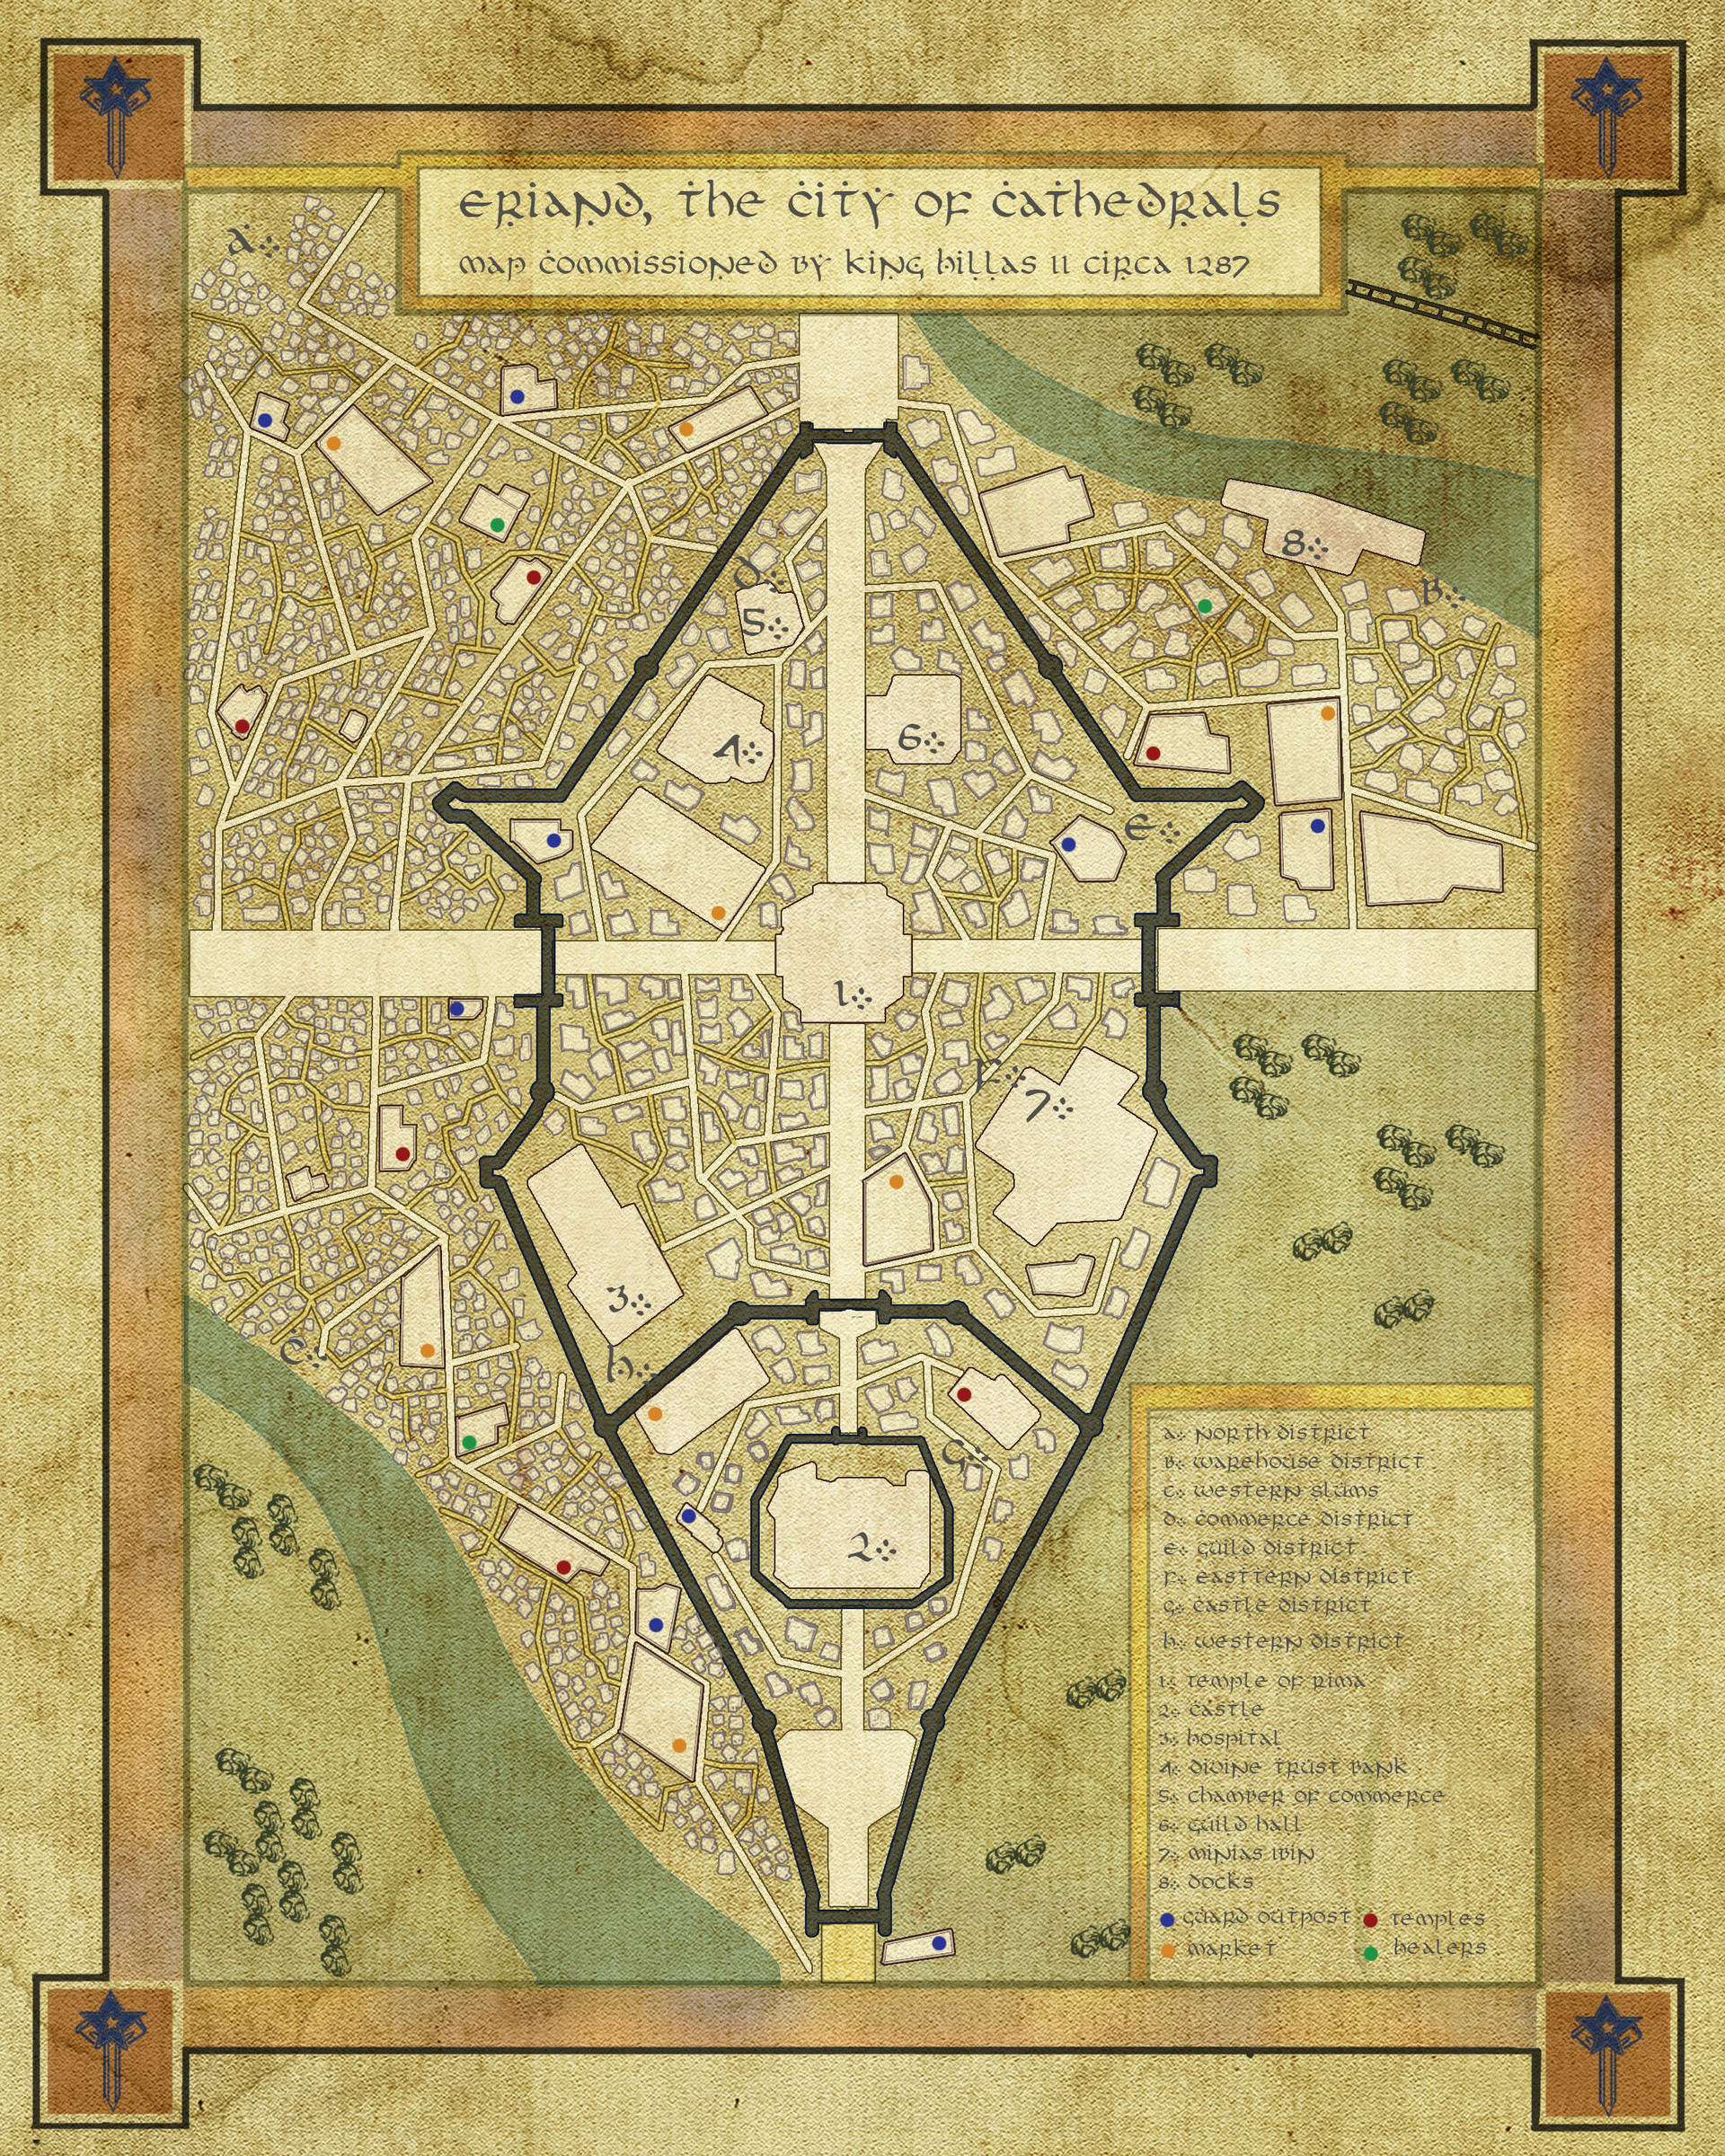 Final map for city of Eriand